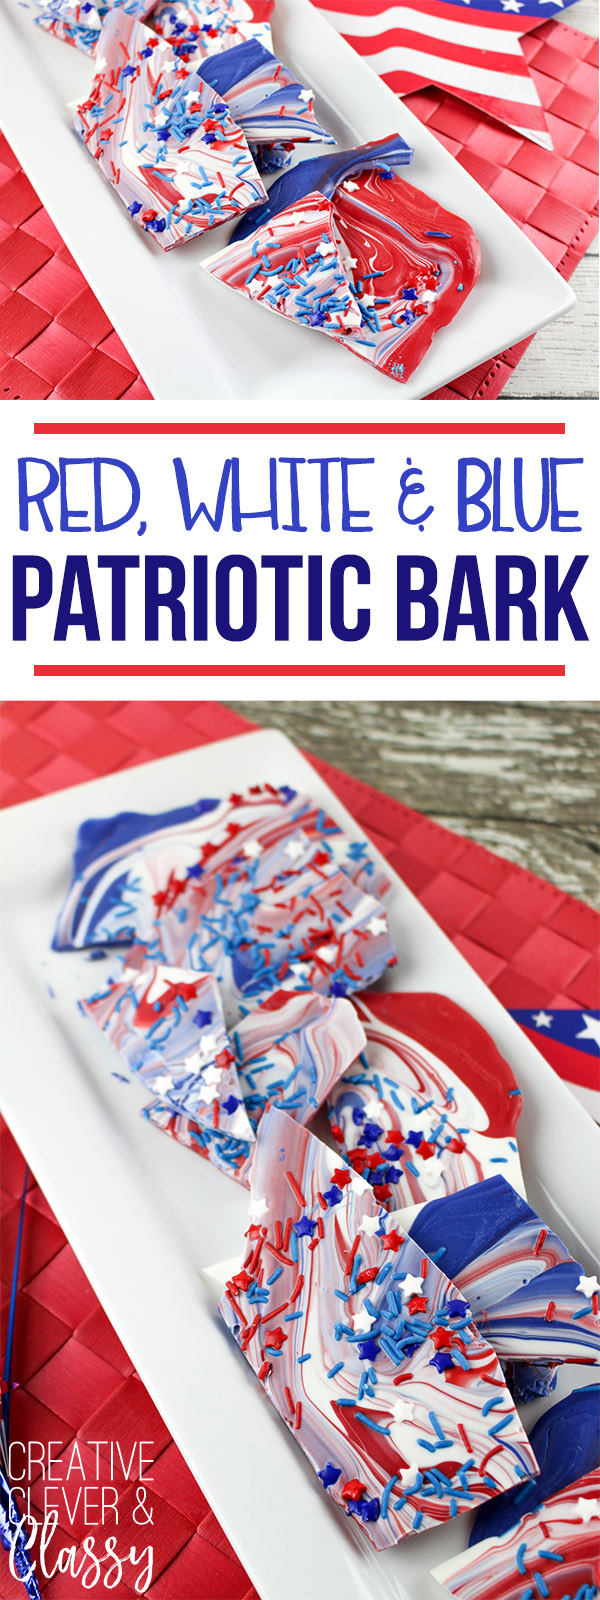 Try this simple red, white and blue chocolate bark, a patriotic recipe great for the 4th of July!